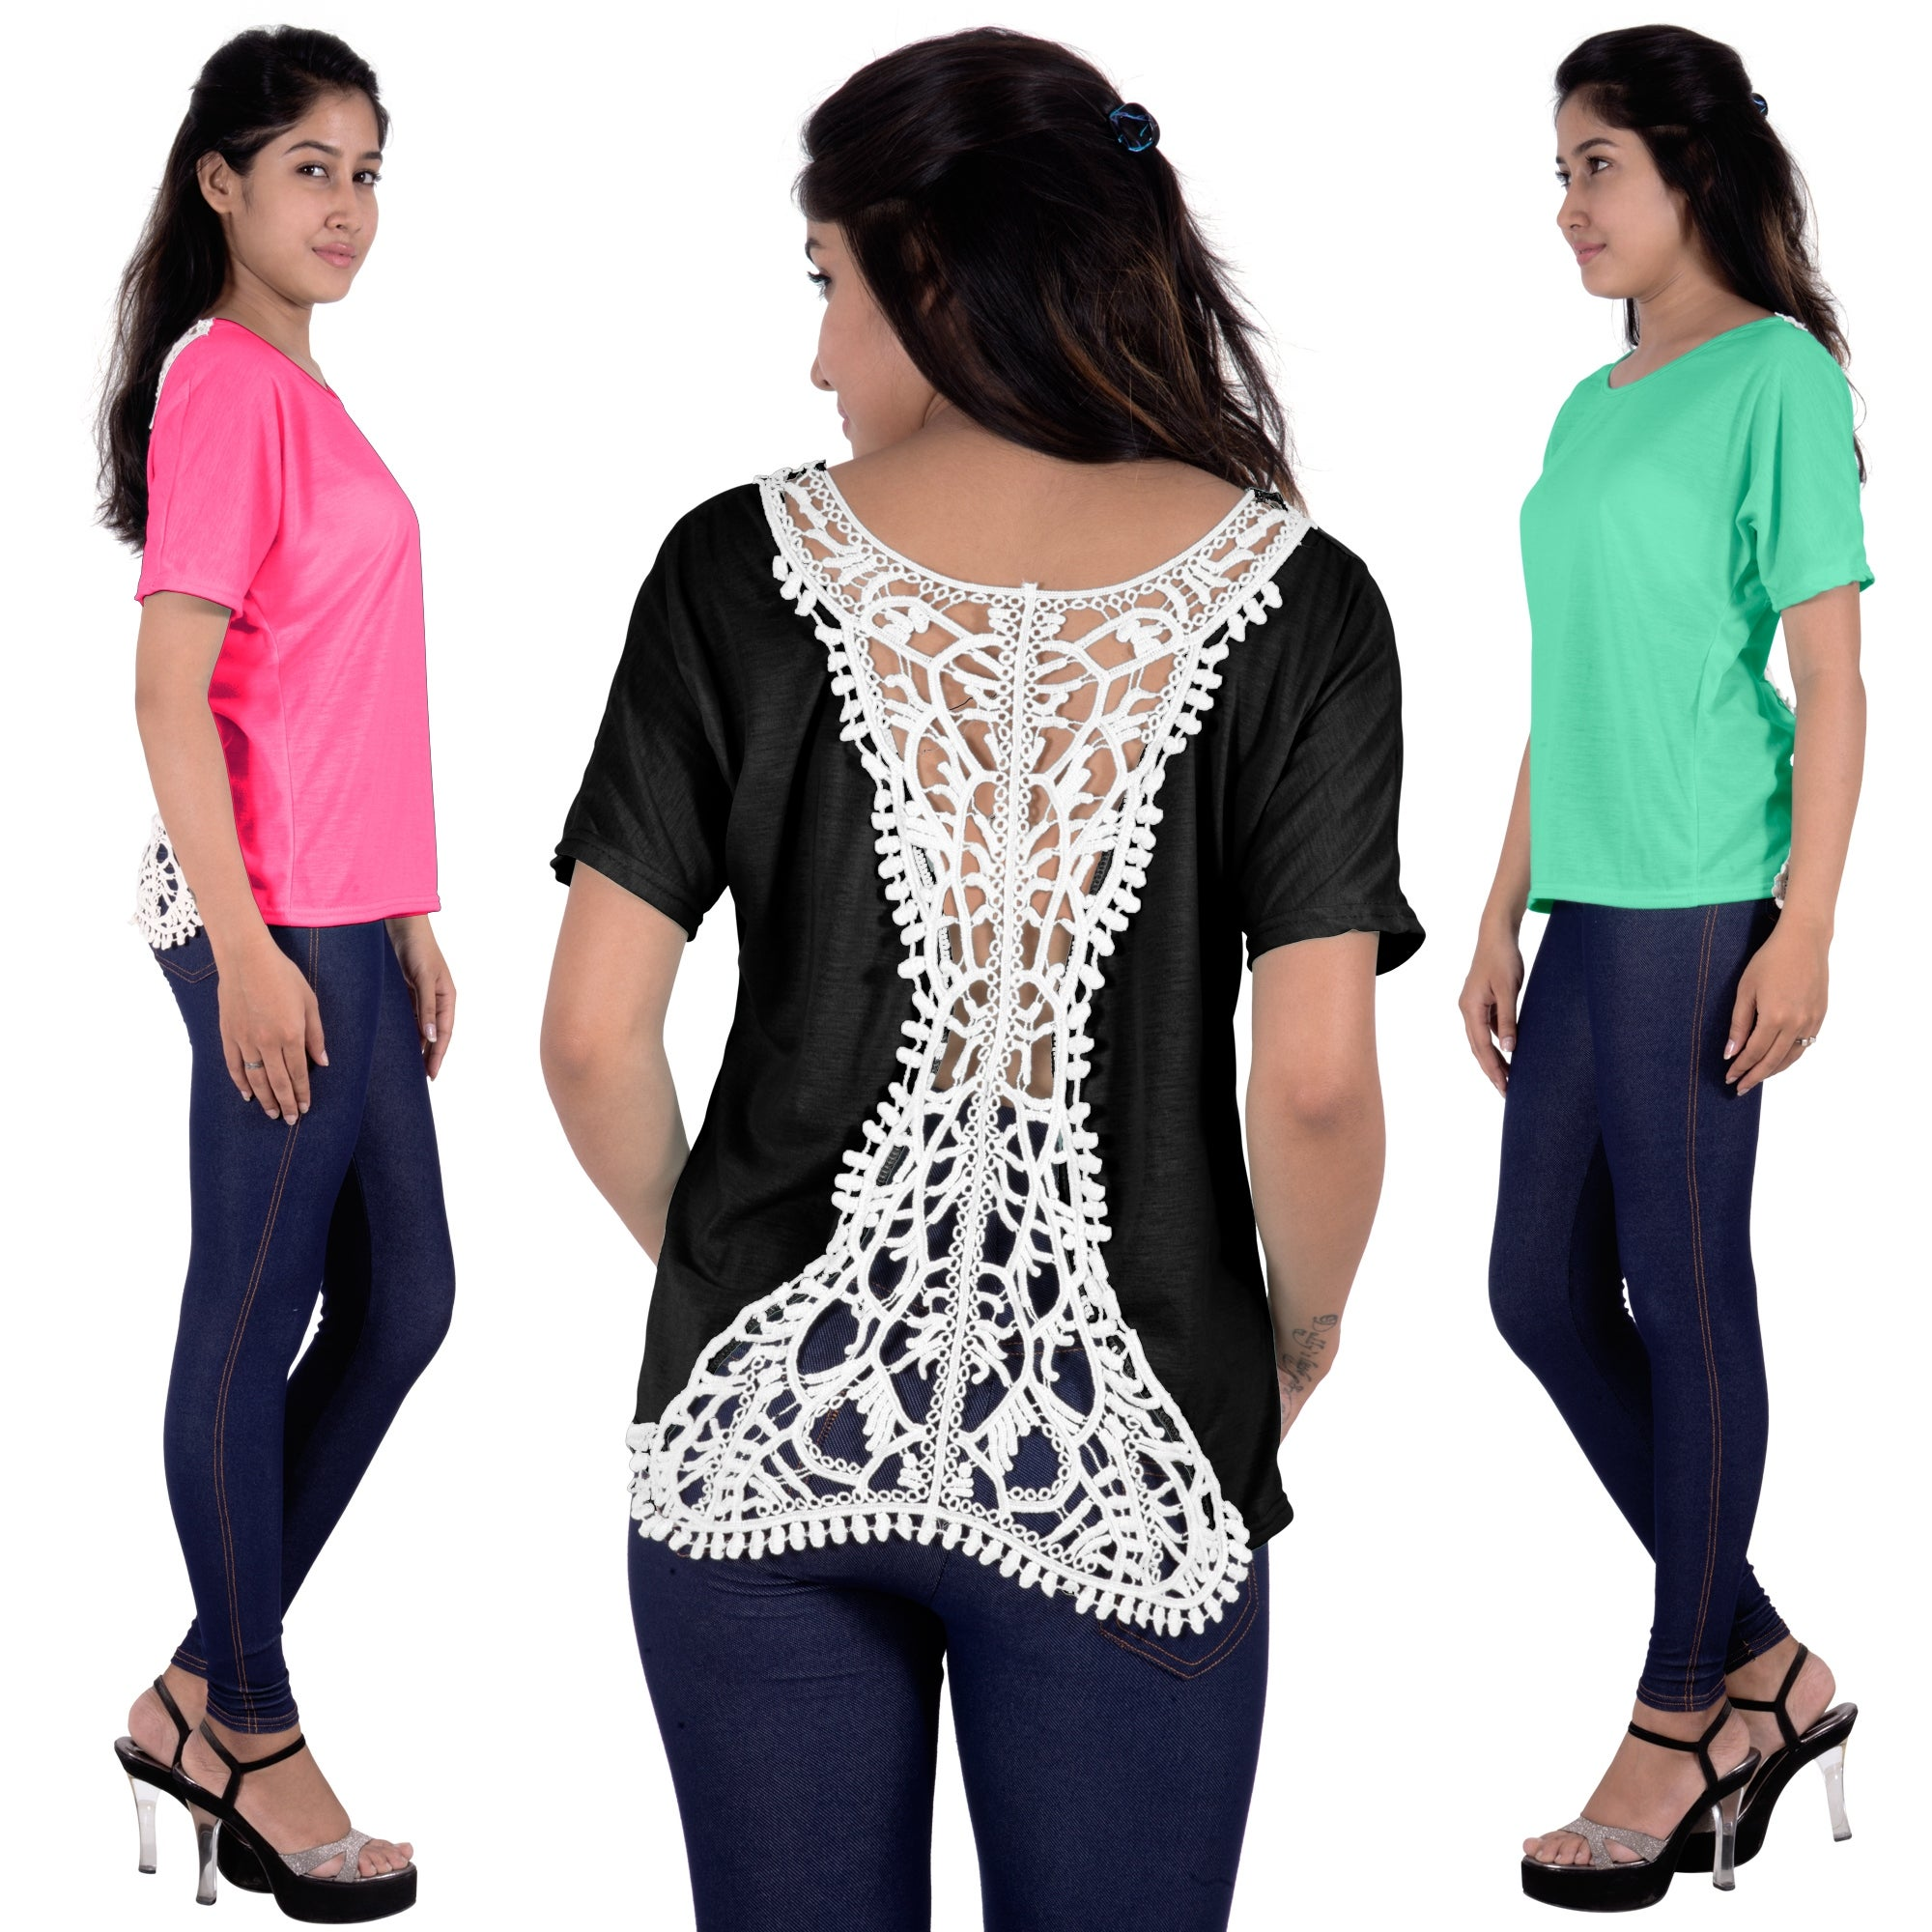 3fe7e1329f Shop Fashion Women Summer Loose Top Short Sleeve Blouse Ladies Casual Tank  Tops T-Shirt Lace - Free Shipping On Orders Over $45 - Overstock - 11822019